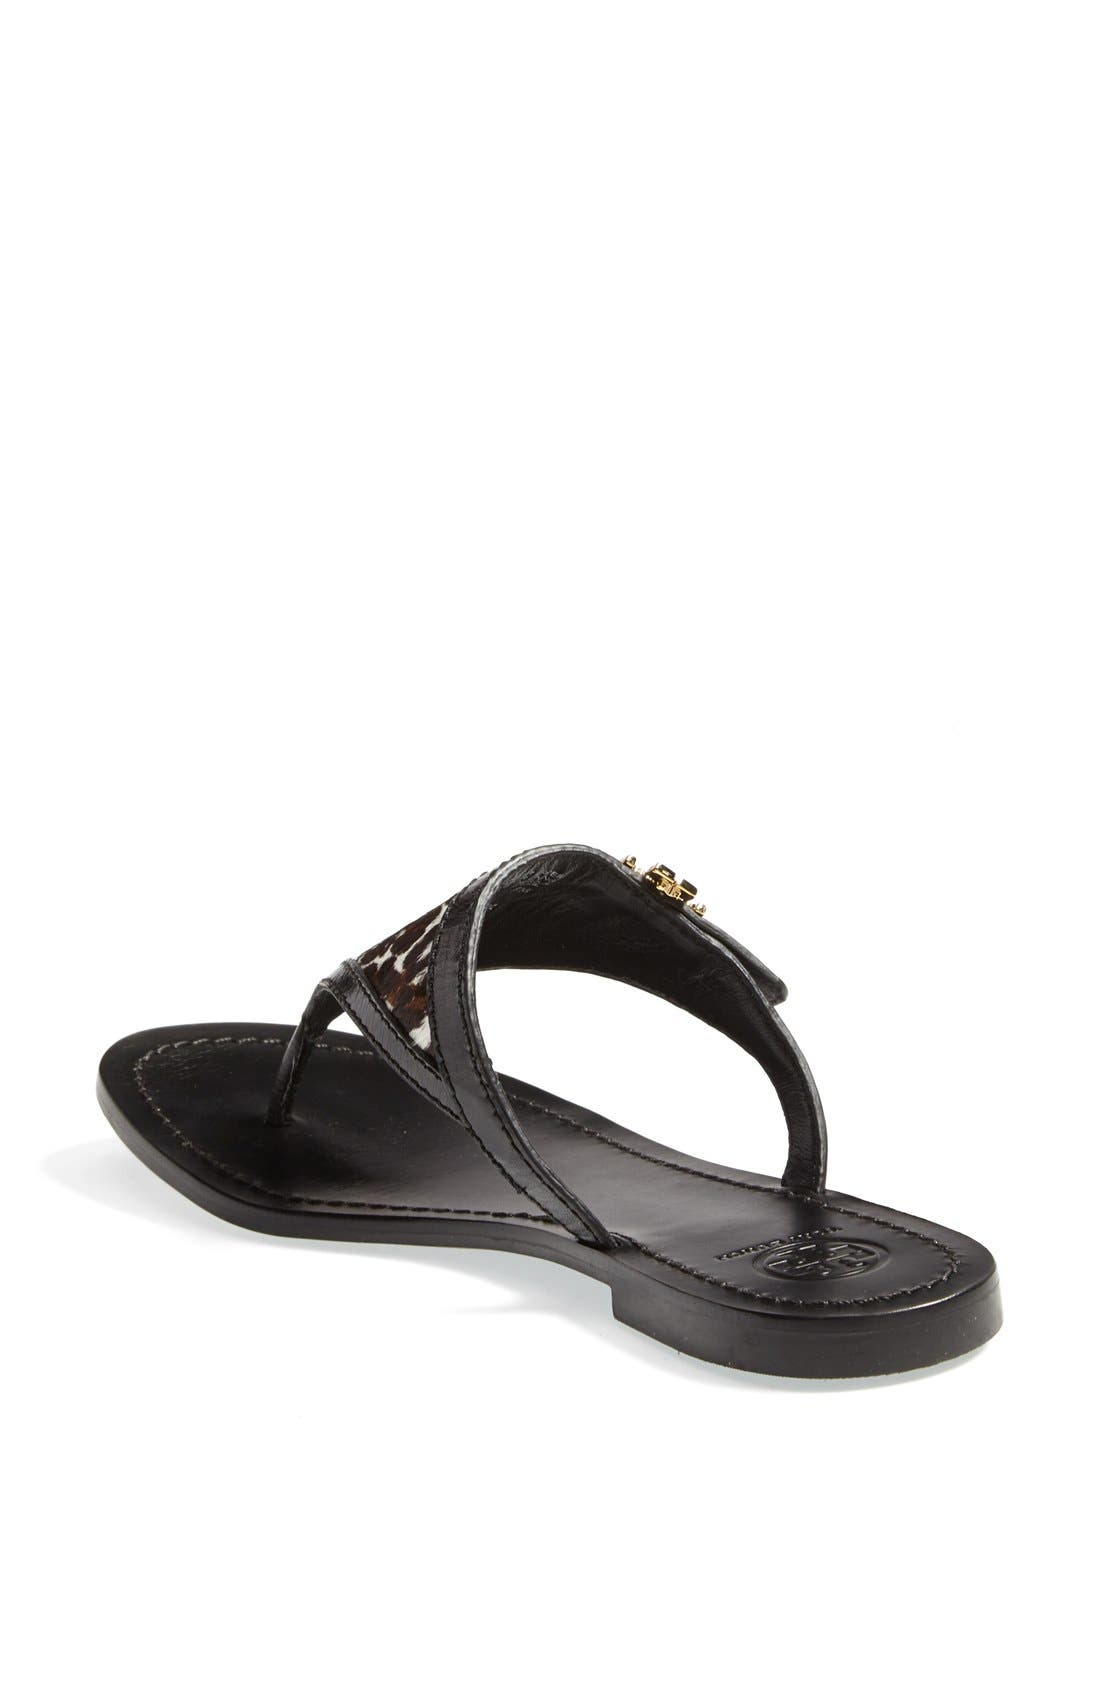 Alternate Image 2  - Tory Burch 'Eloise' Flat Thong Sandal (Nordstrom Exclusive) (Women)